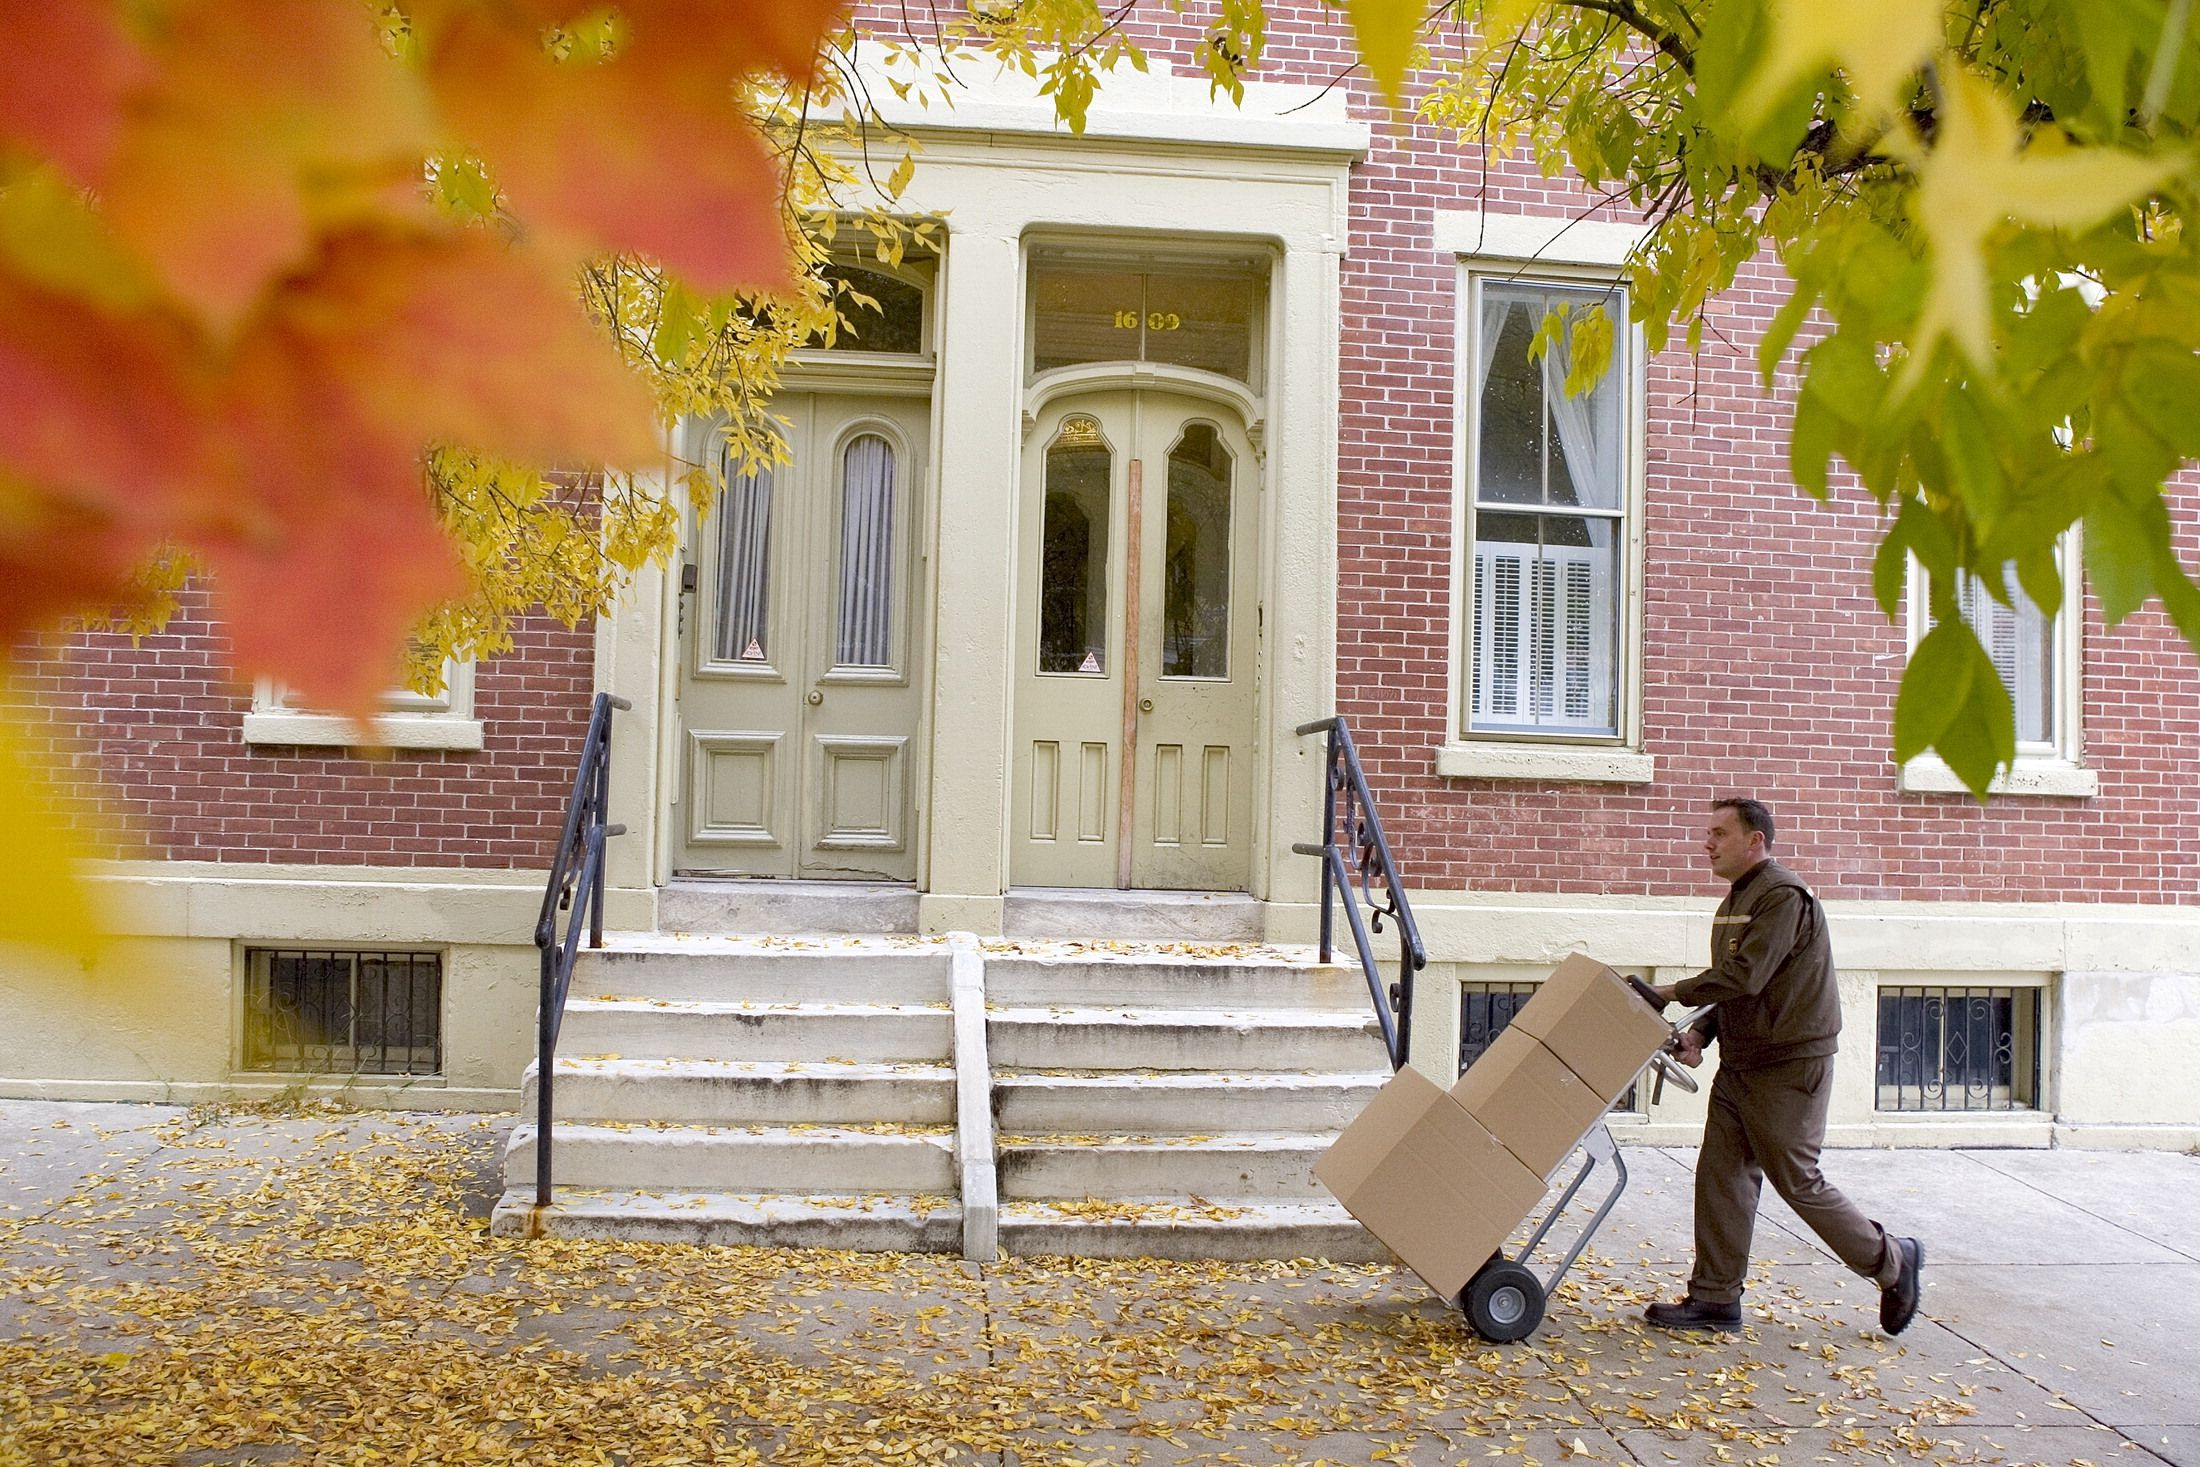 Please visit the UPS job site to learn more about the seasonal opportunities available at UPS! http://jobs-ups.com/?howheard=P3150